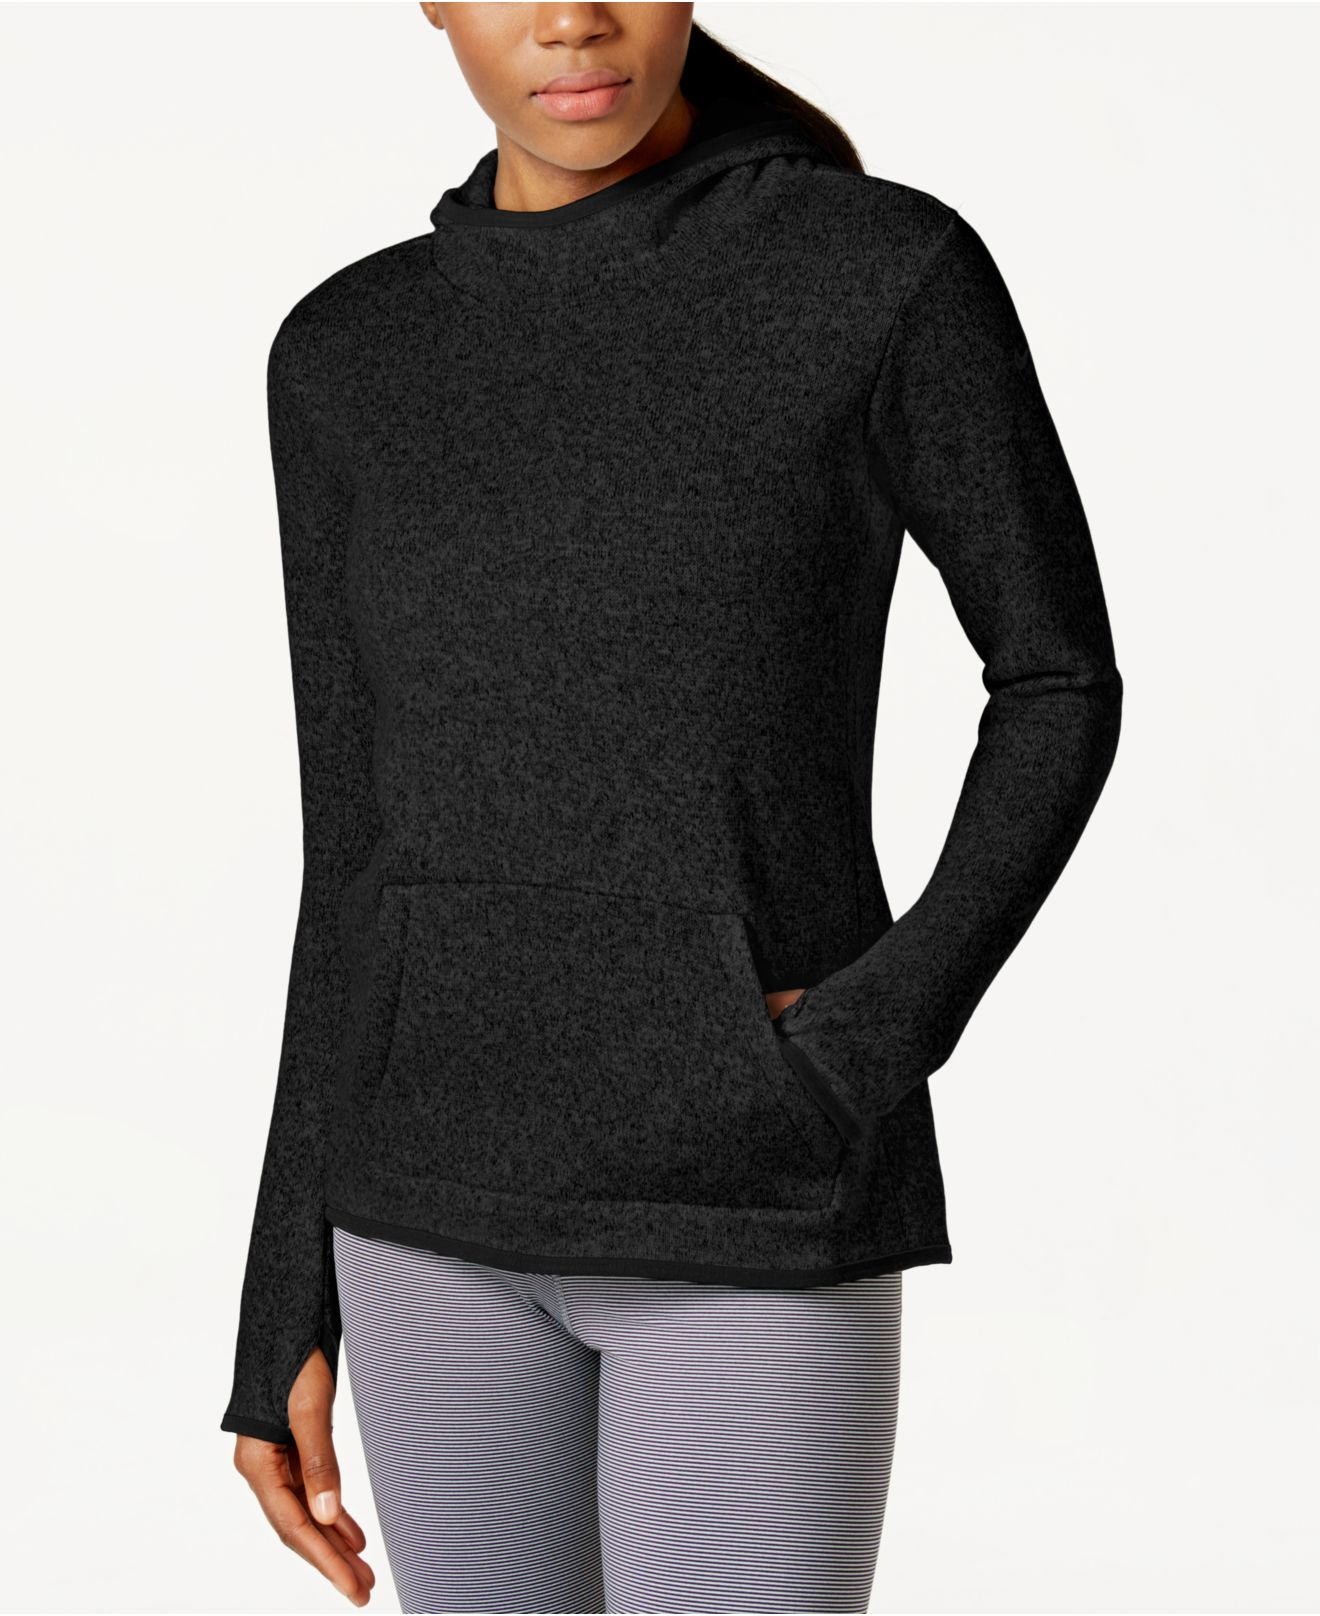 outlet store 005ce feeb7 Nike Hypernatural Therma-fit Hoodie in Black - Lyst